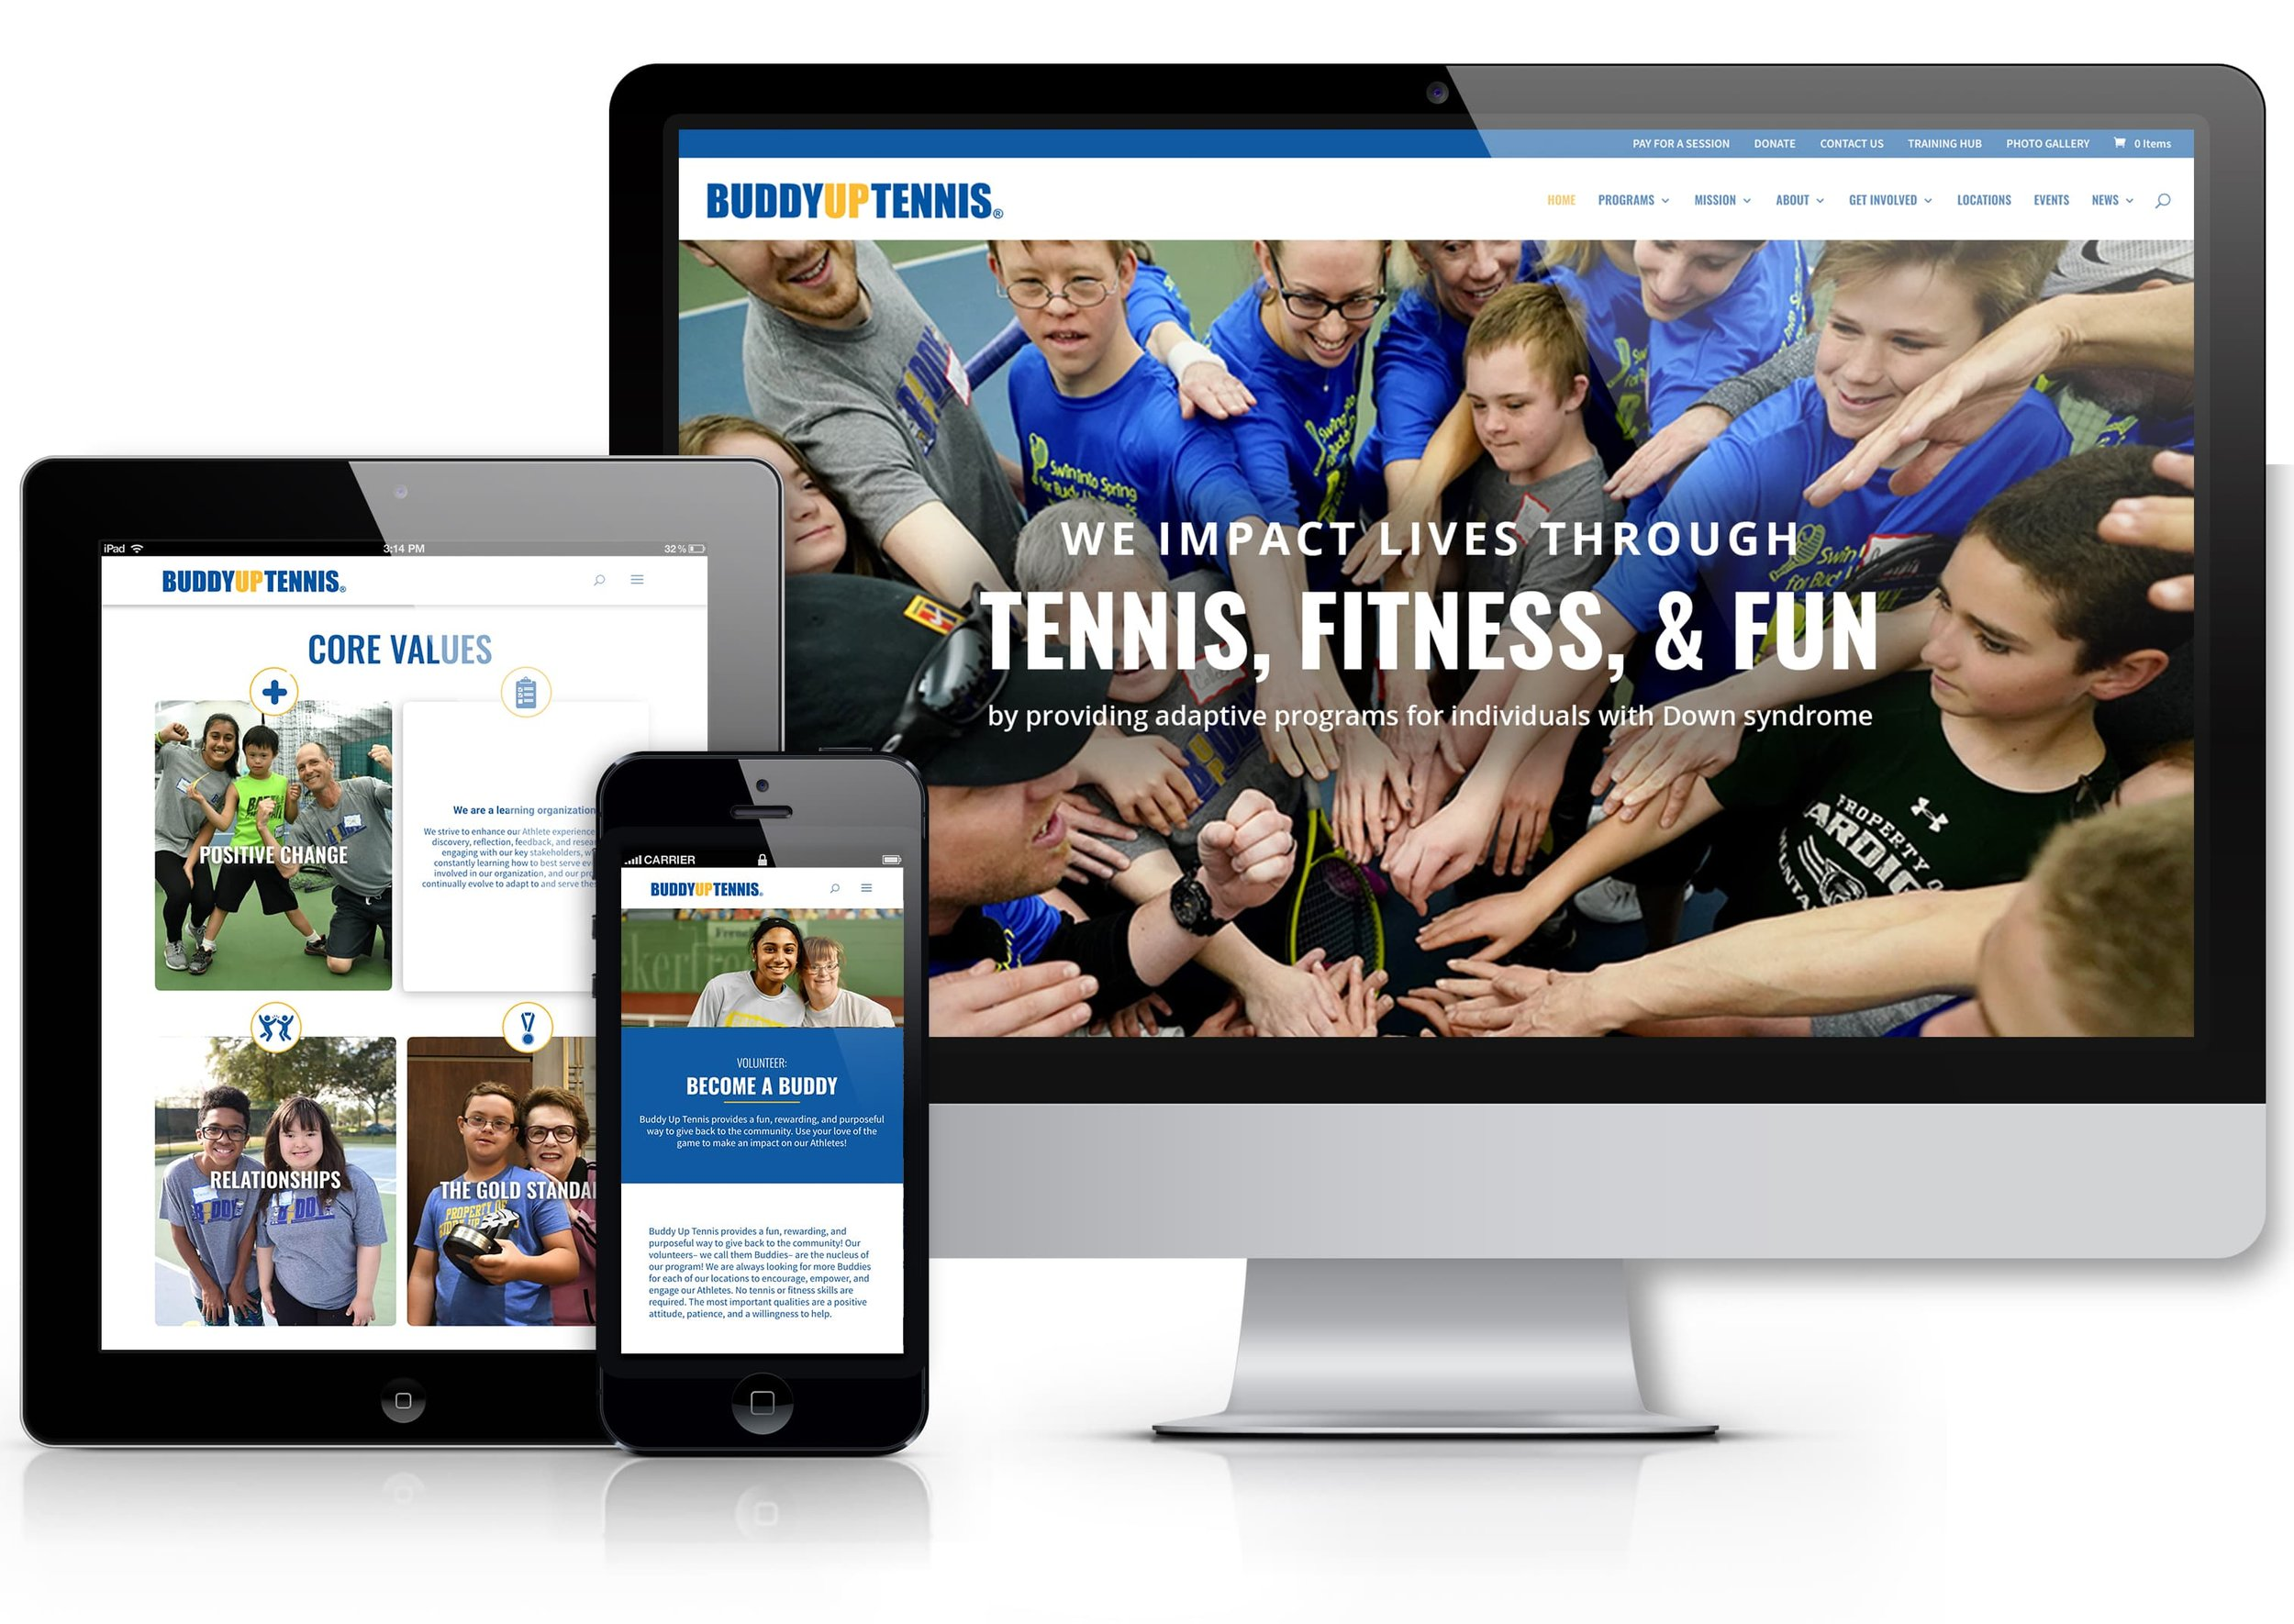 Buddy Up Tennis Site Mockup.jpg